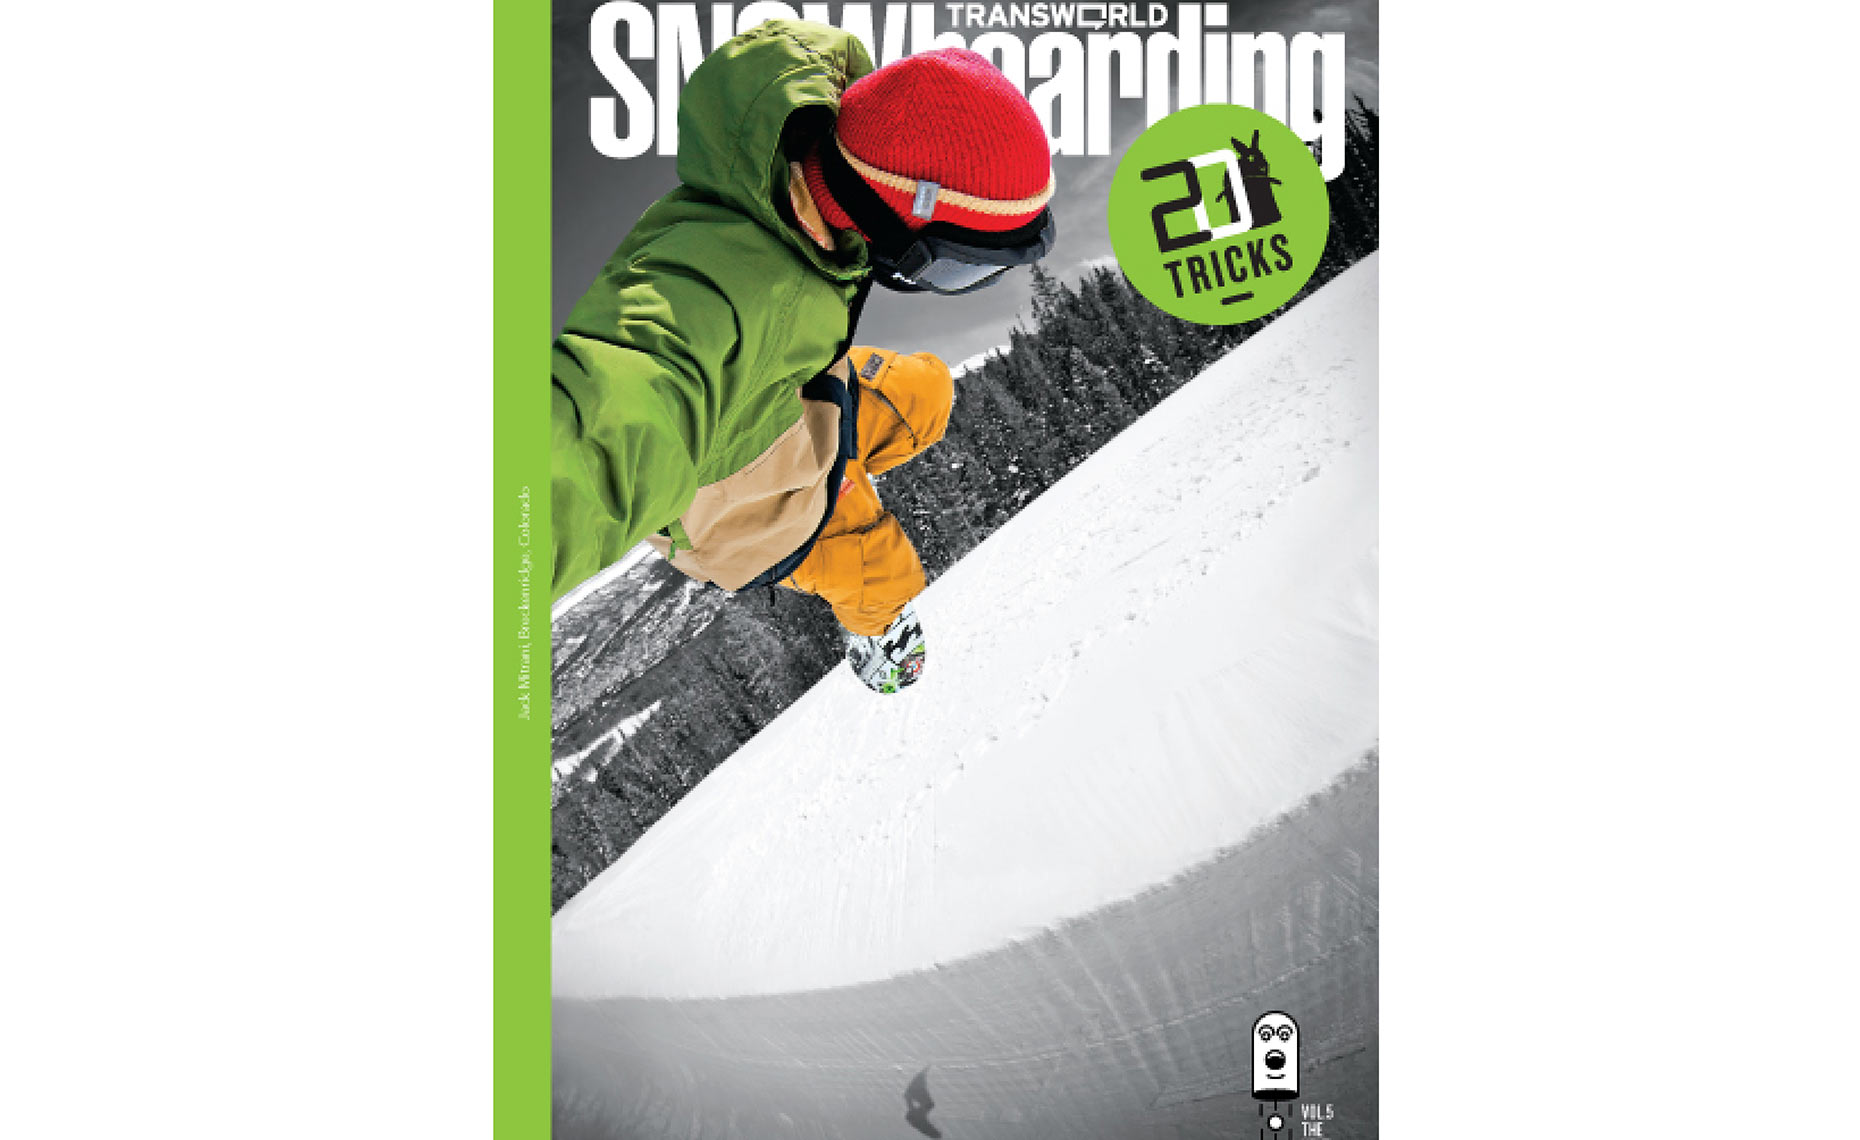 07-Jack-Mitrani-TransWorld-SNOWboarding-Chris-Wellhausen